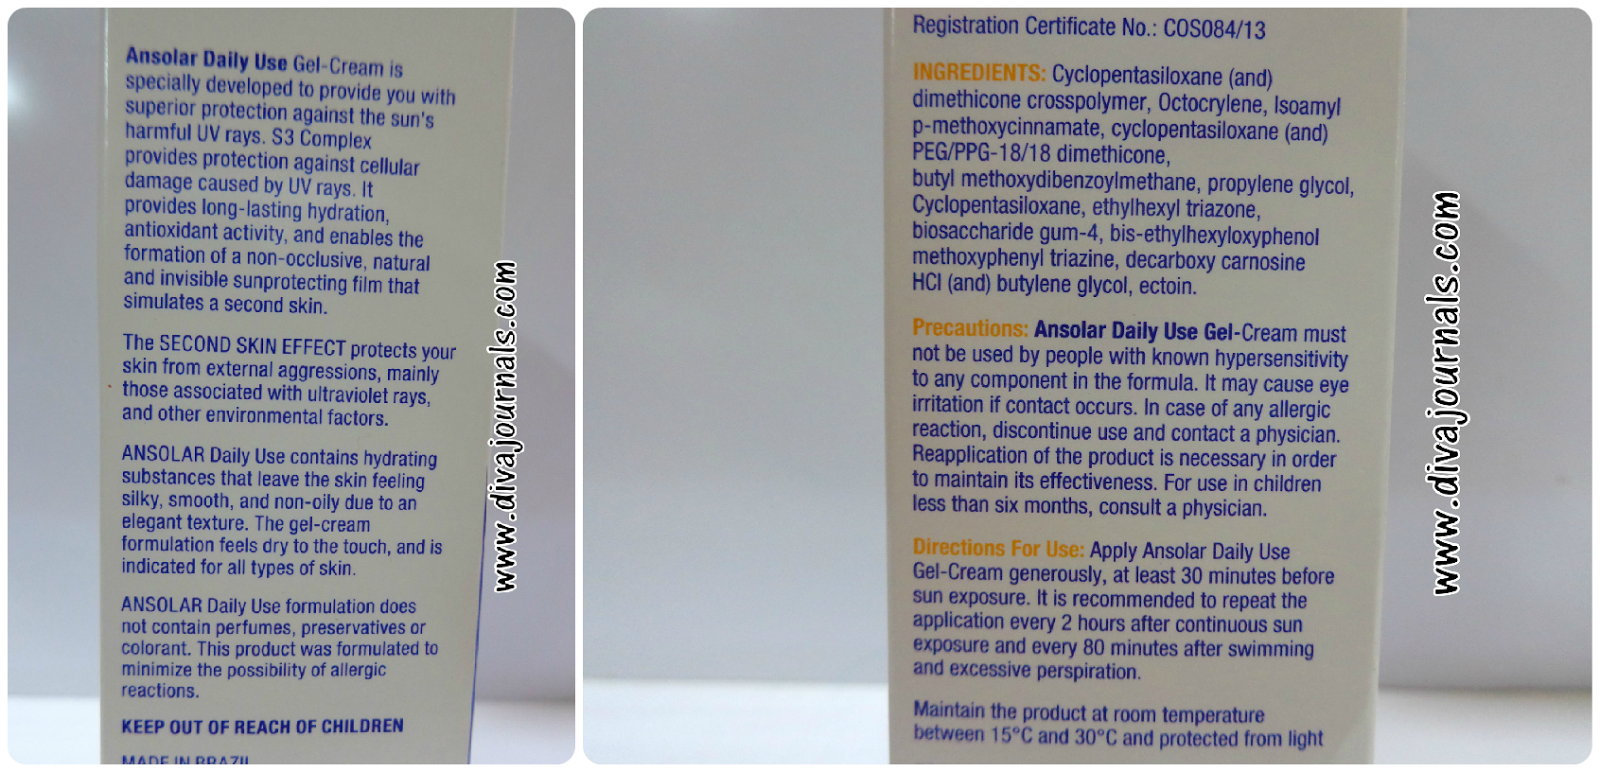 Ansolar Daily Use Gel-Cream SPF 30 Sunscreen Review